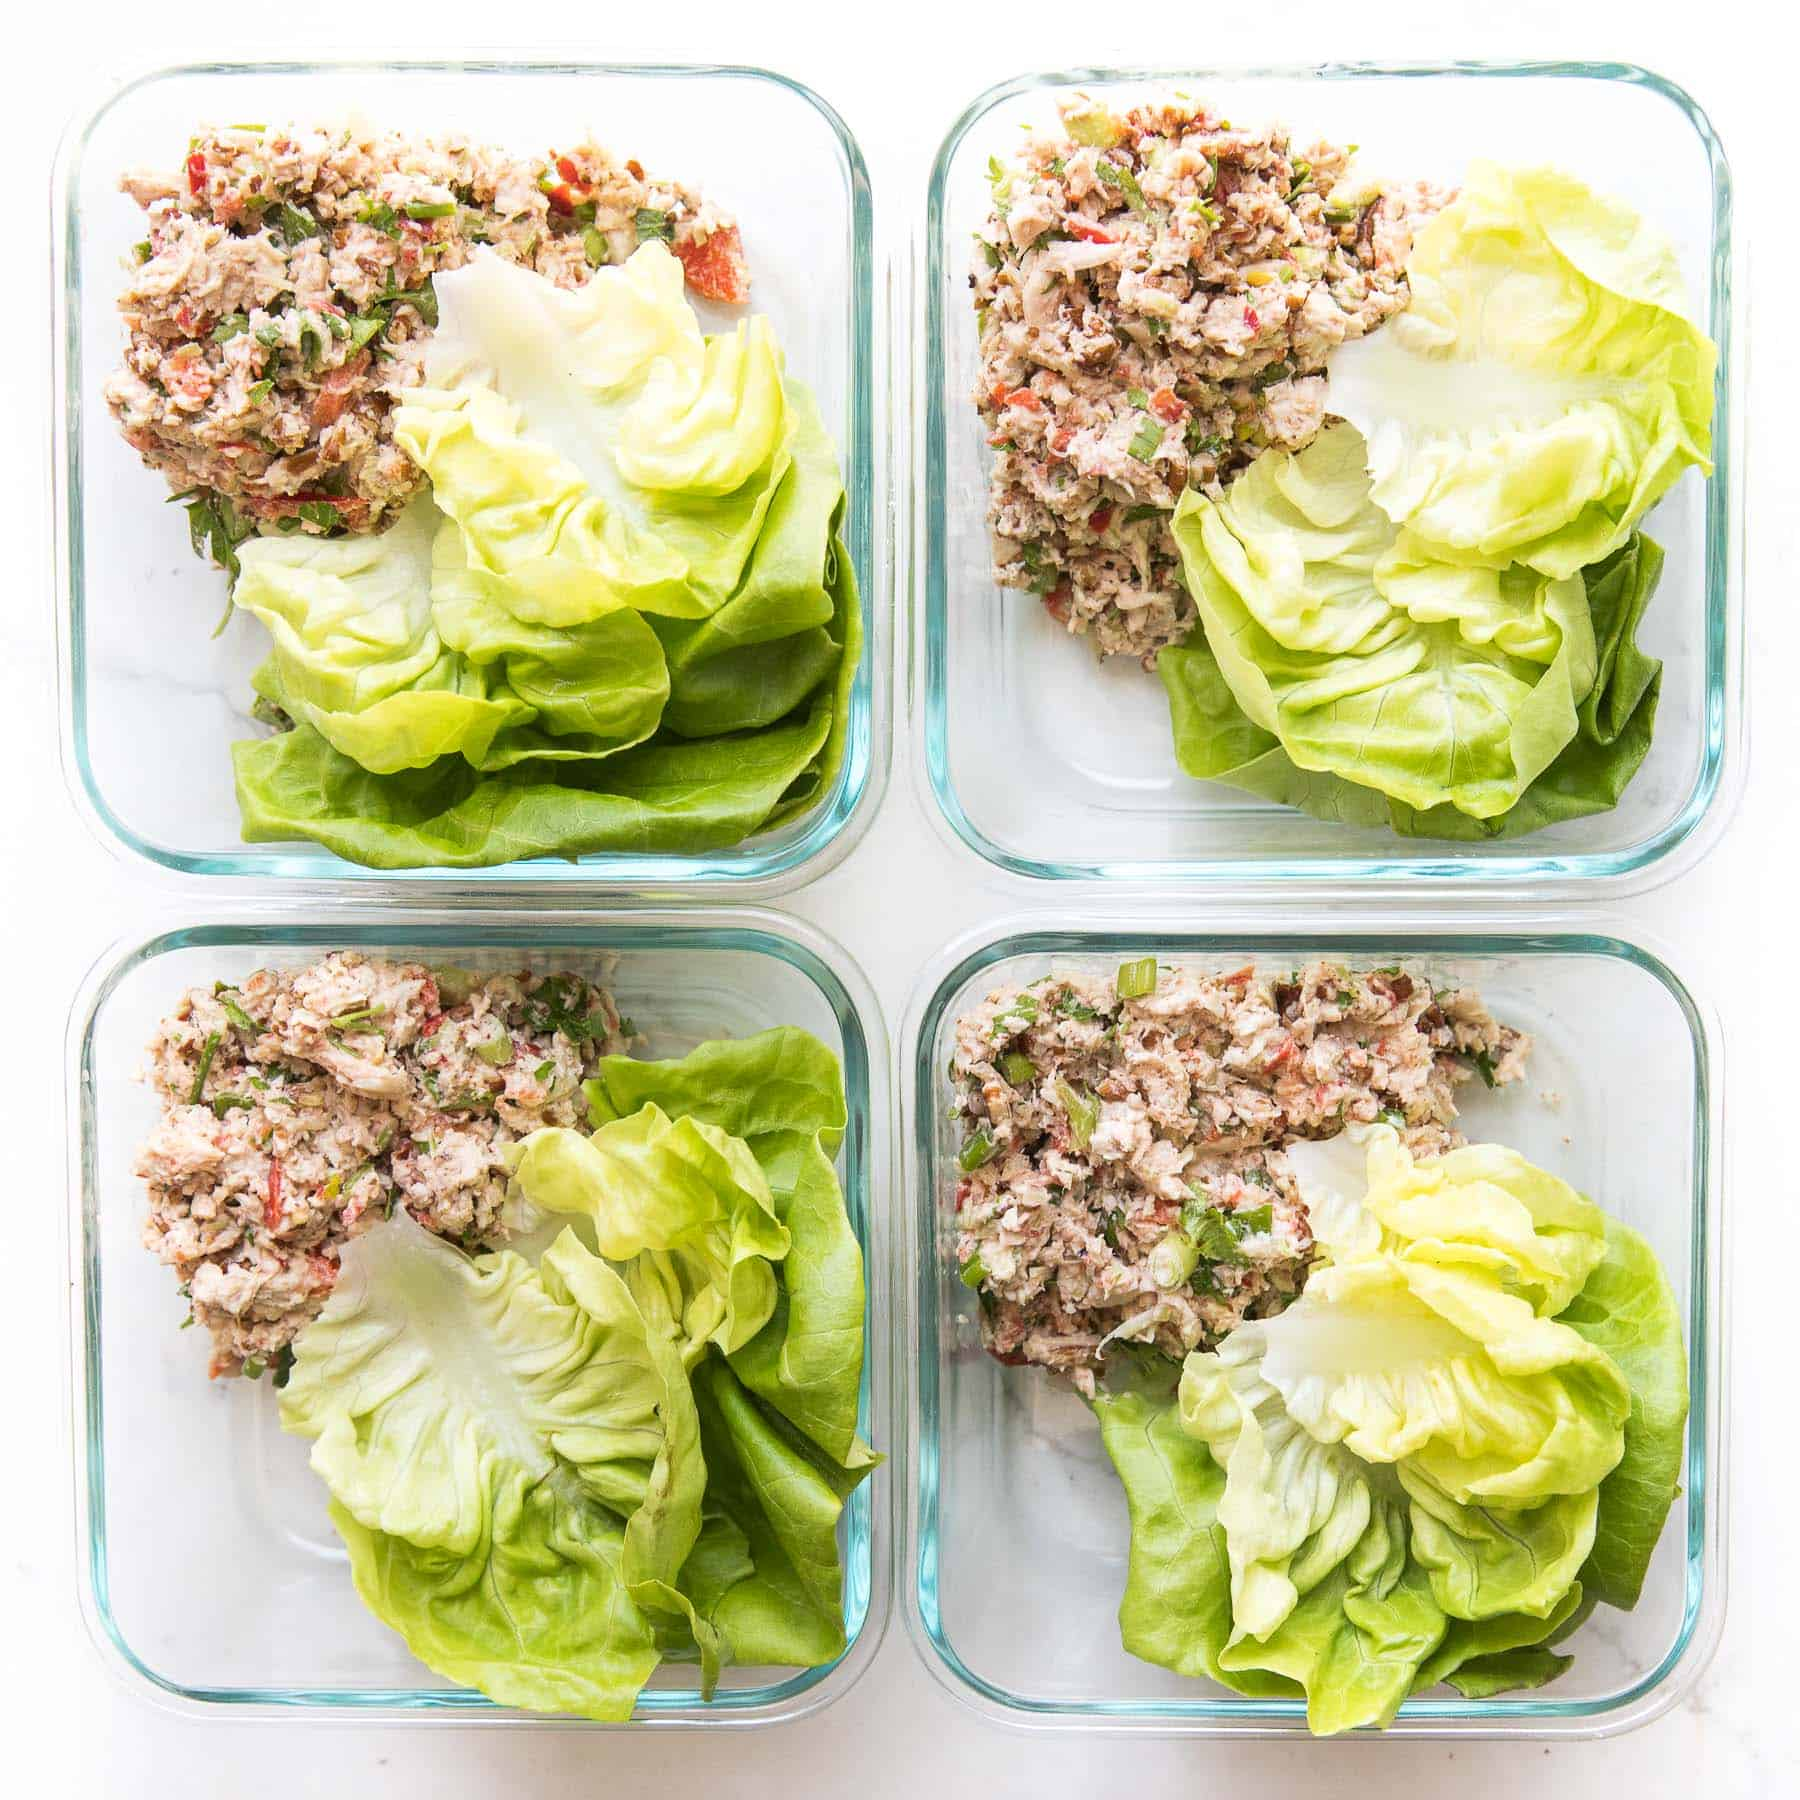 chicken salad and butter lettuce in meal prep containers on a white background